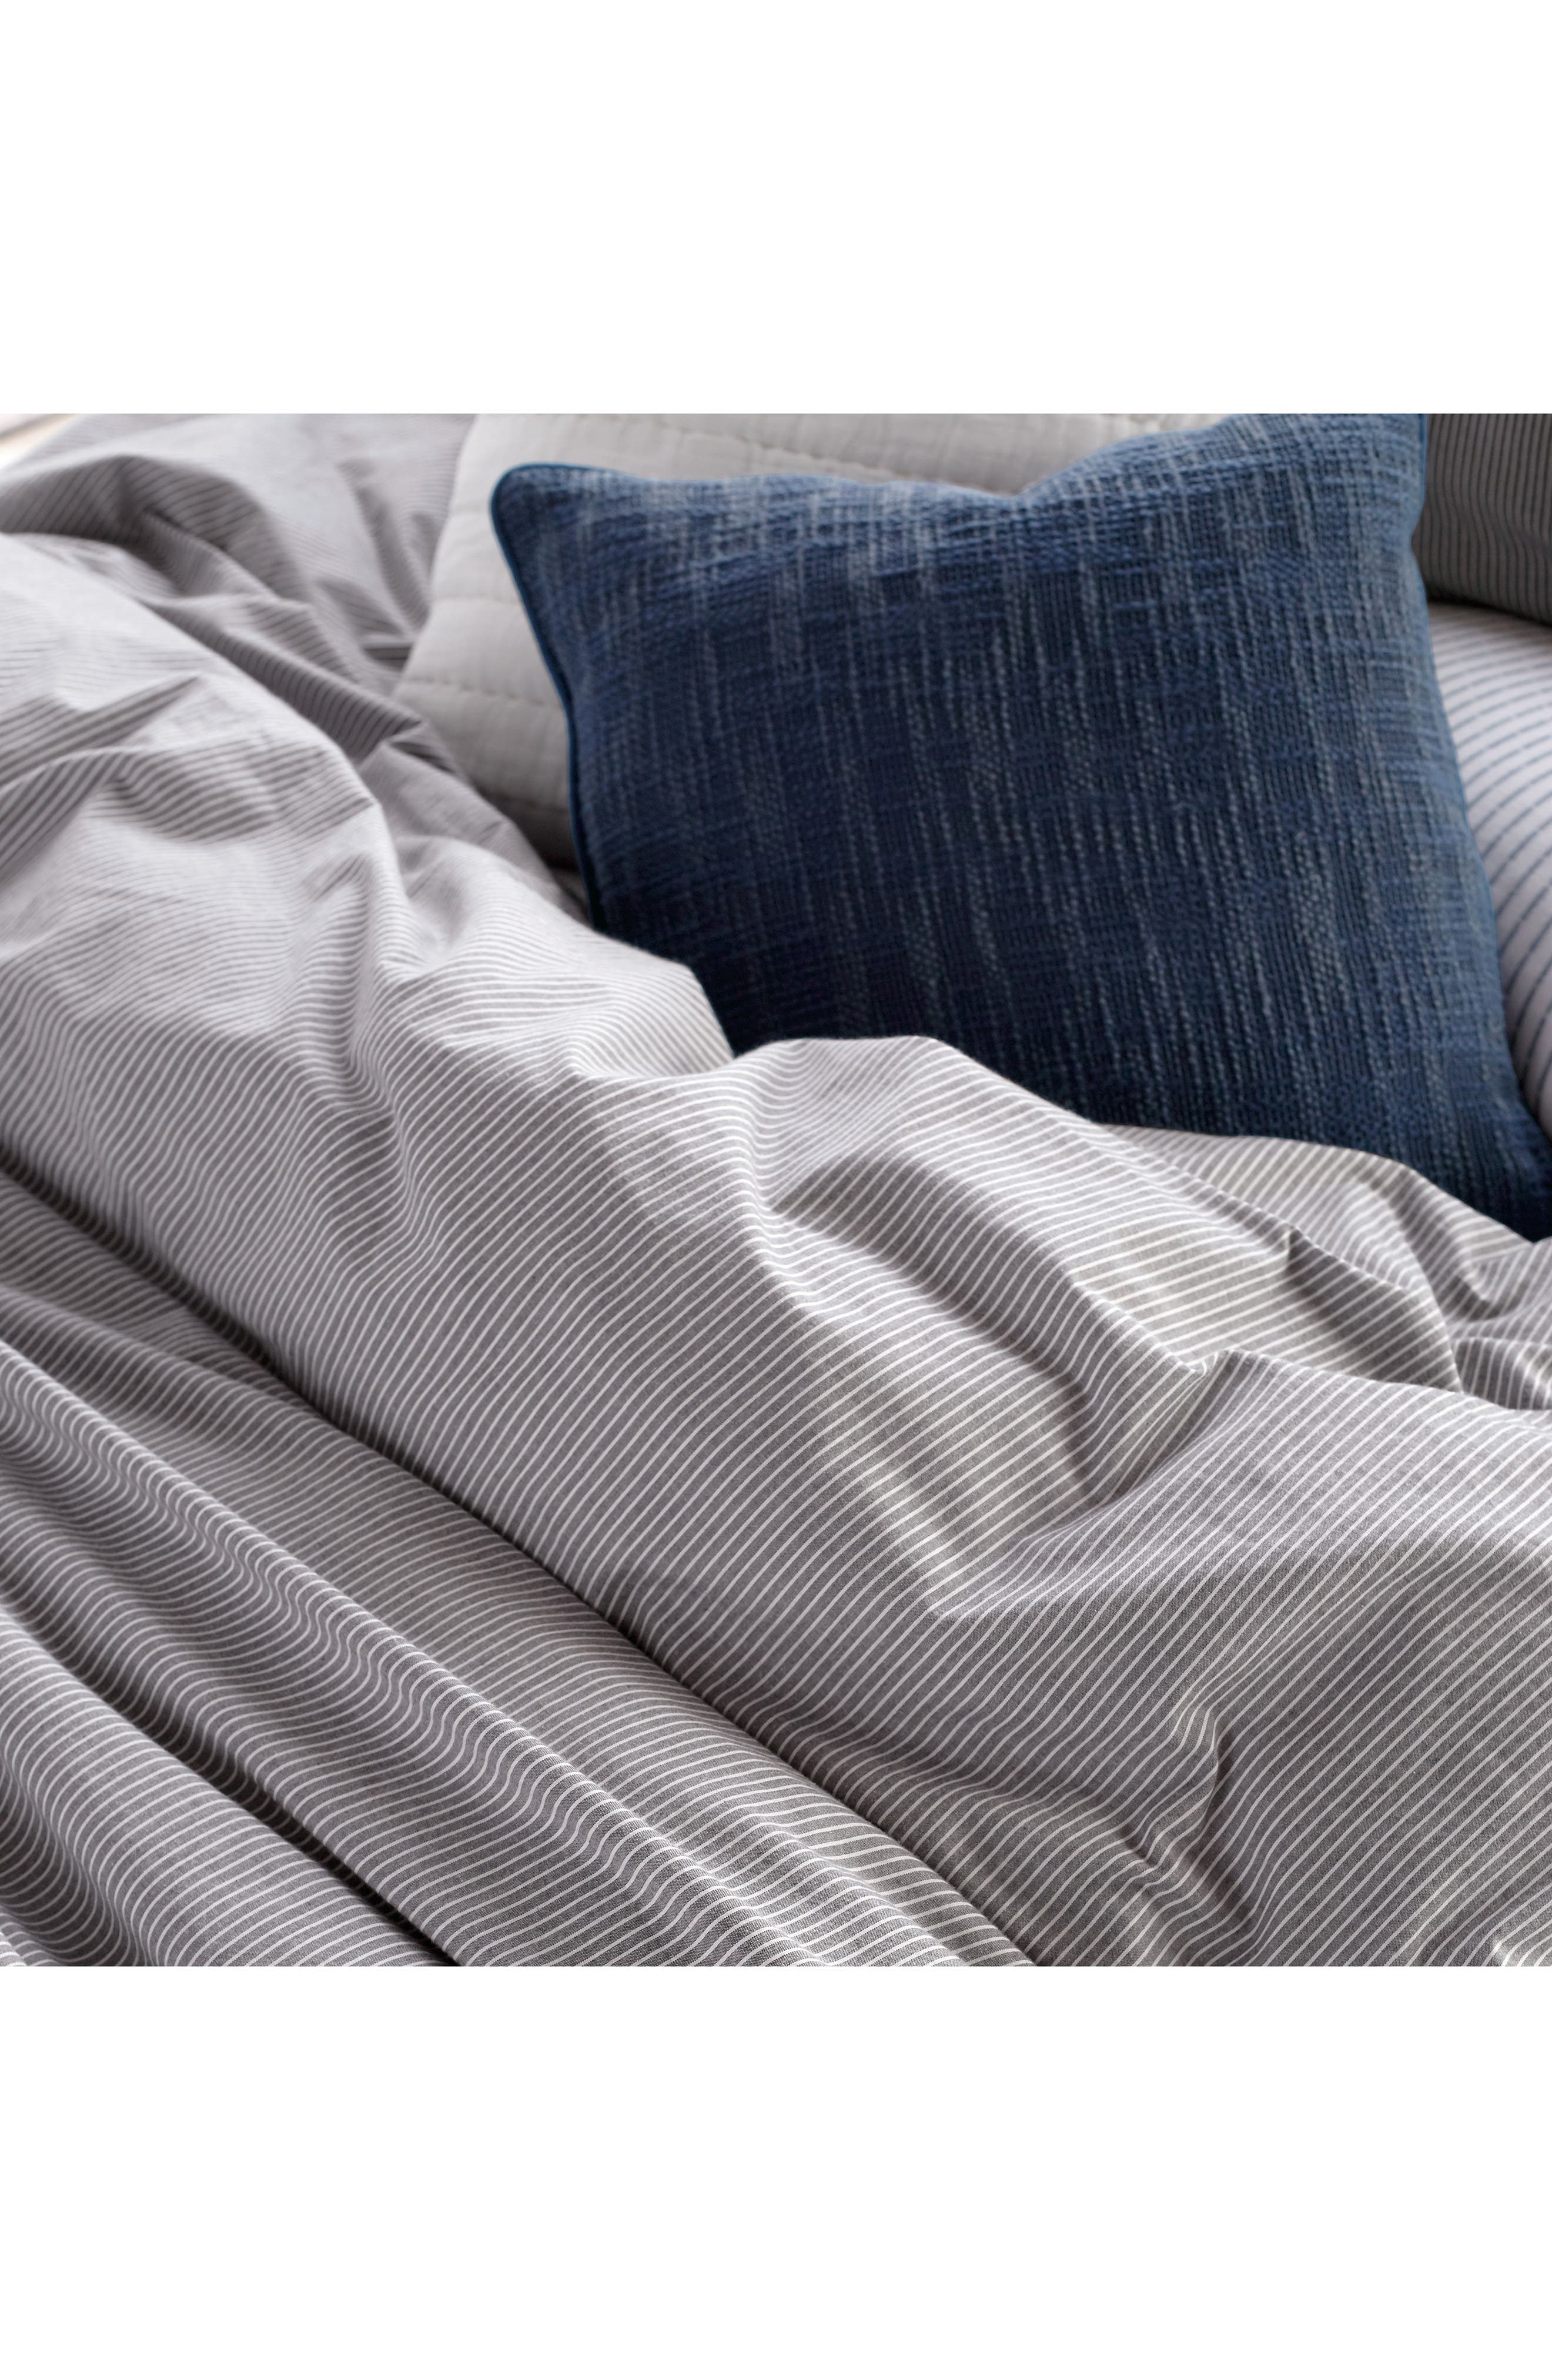 DKNY, PURE Stripe 144 Thread Count Duvet Cover, Alternate thumbnail 3, color, GREY